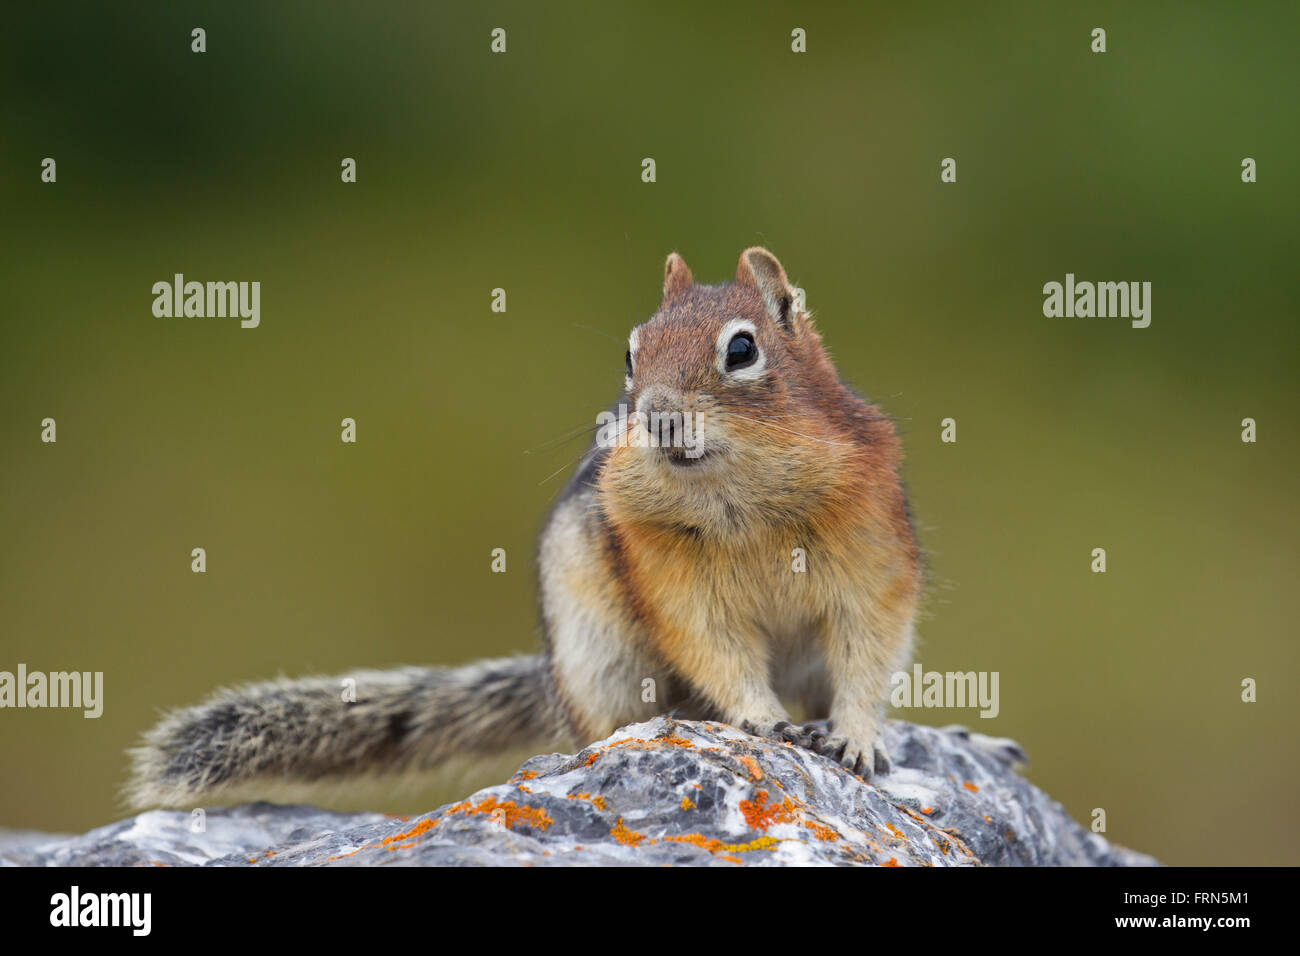 Golden-mantled ground squirrel (Callospermophilus lateralis) on rock, native to western North America - Stock Image